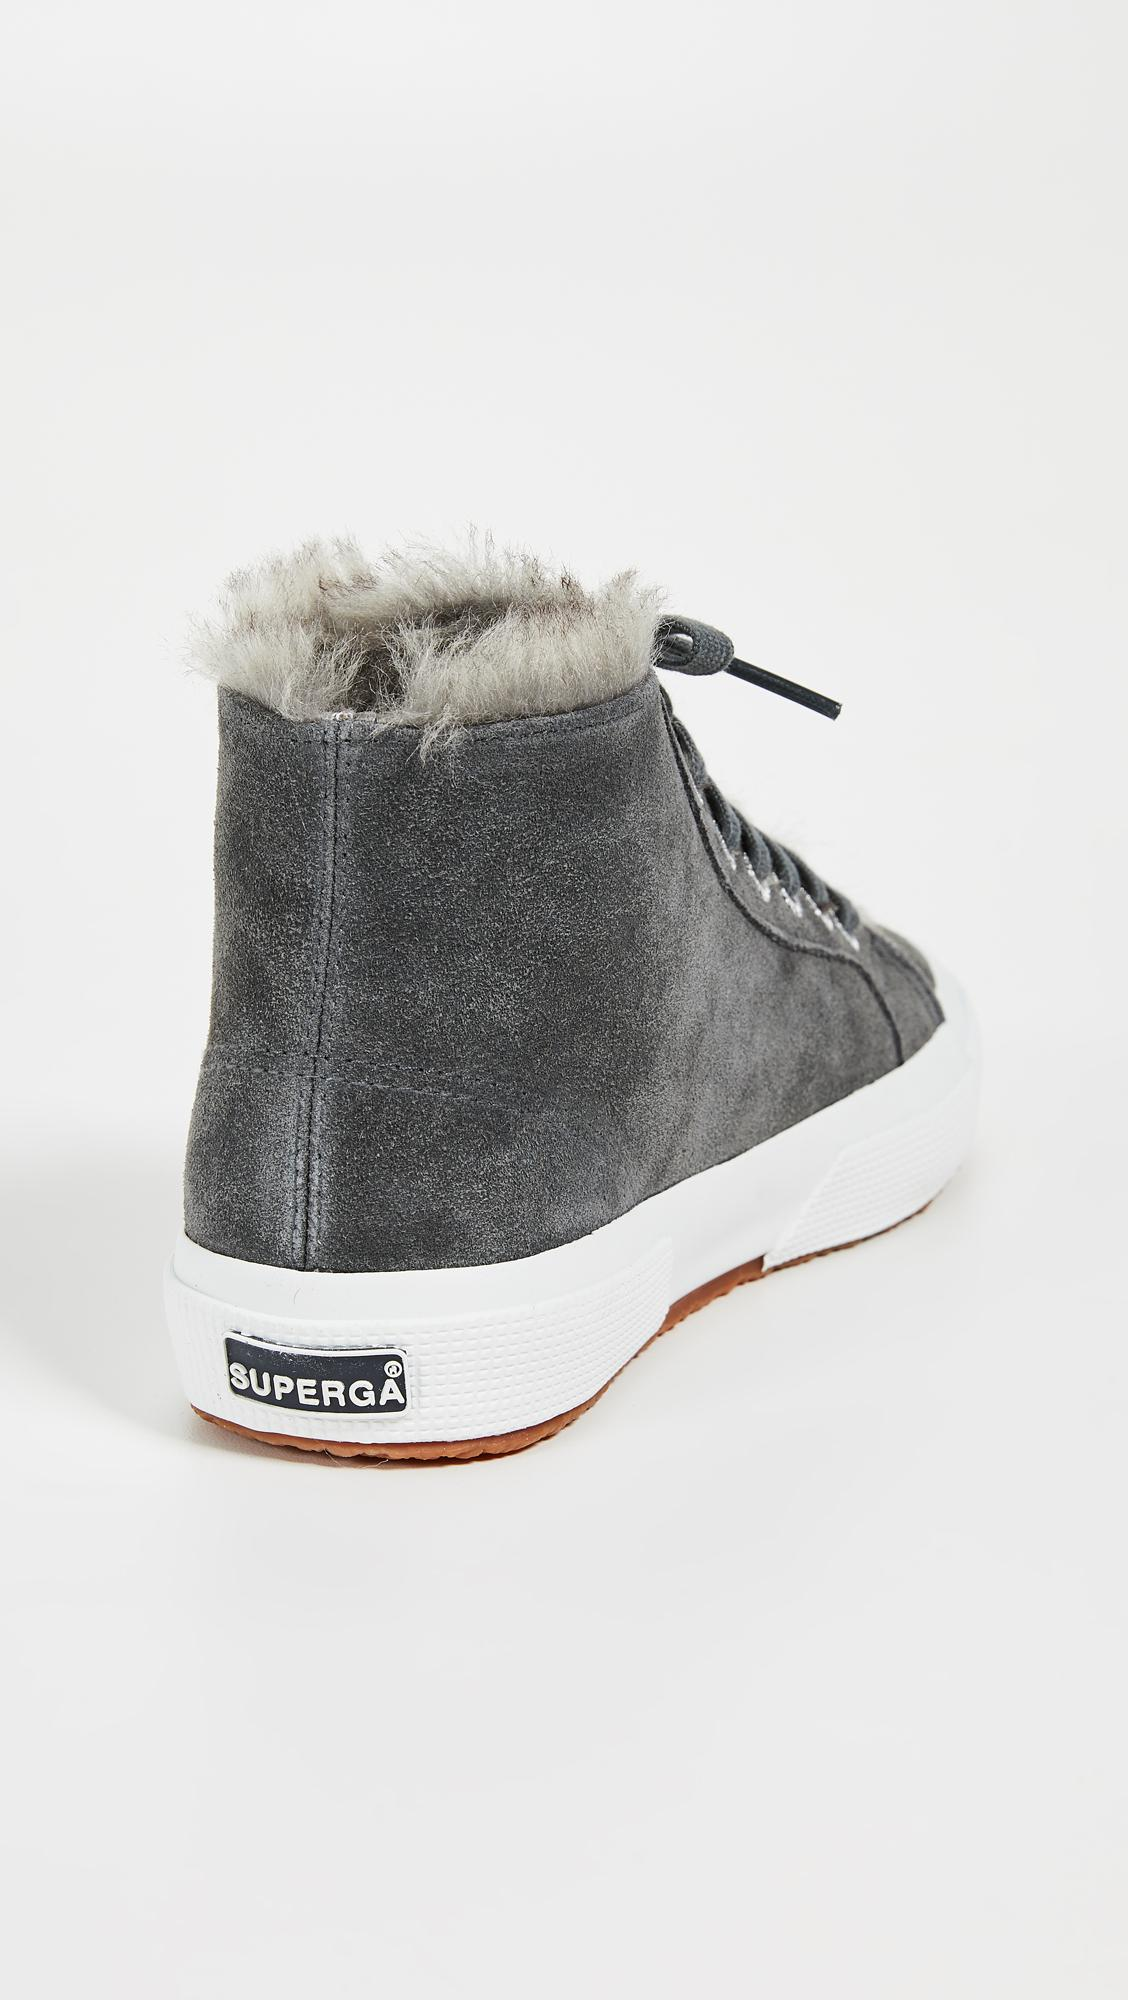 Superga 2795 Faux Fur Lined Sneakers in